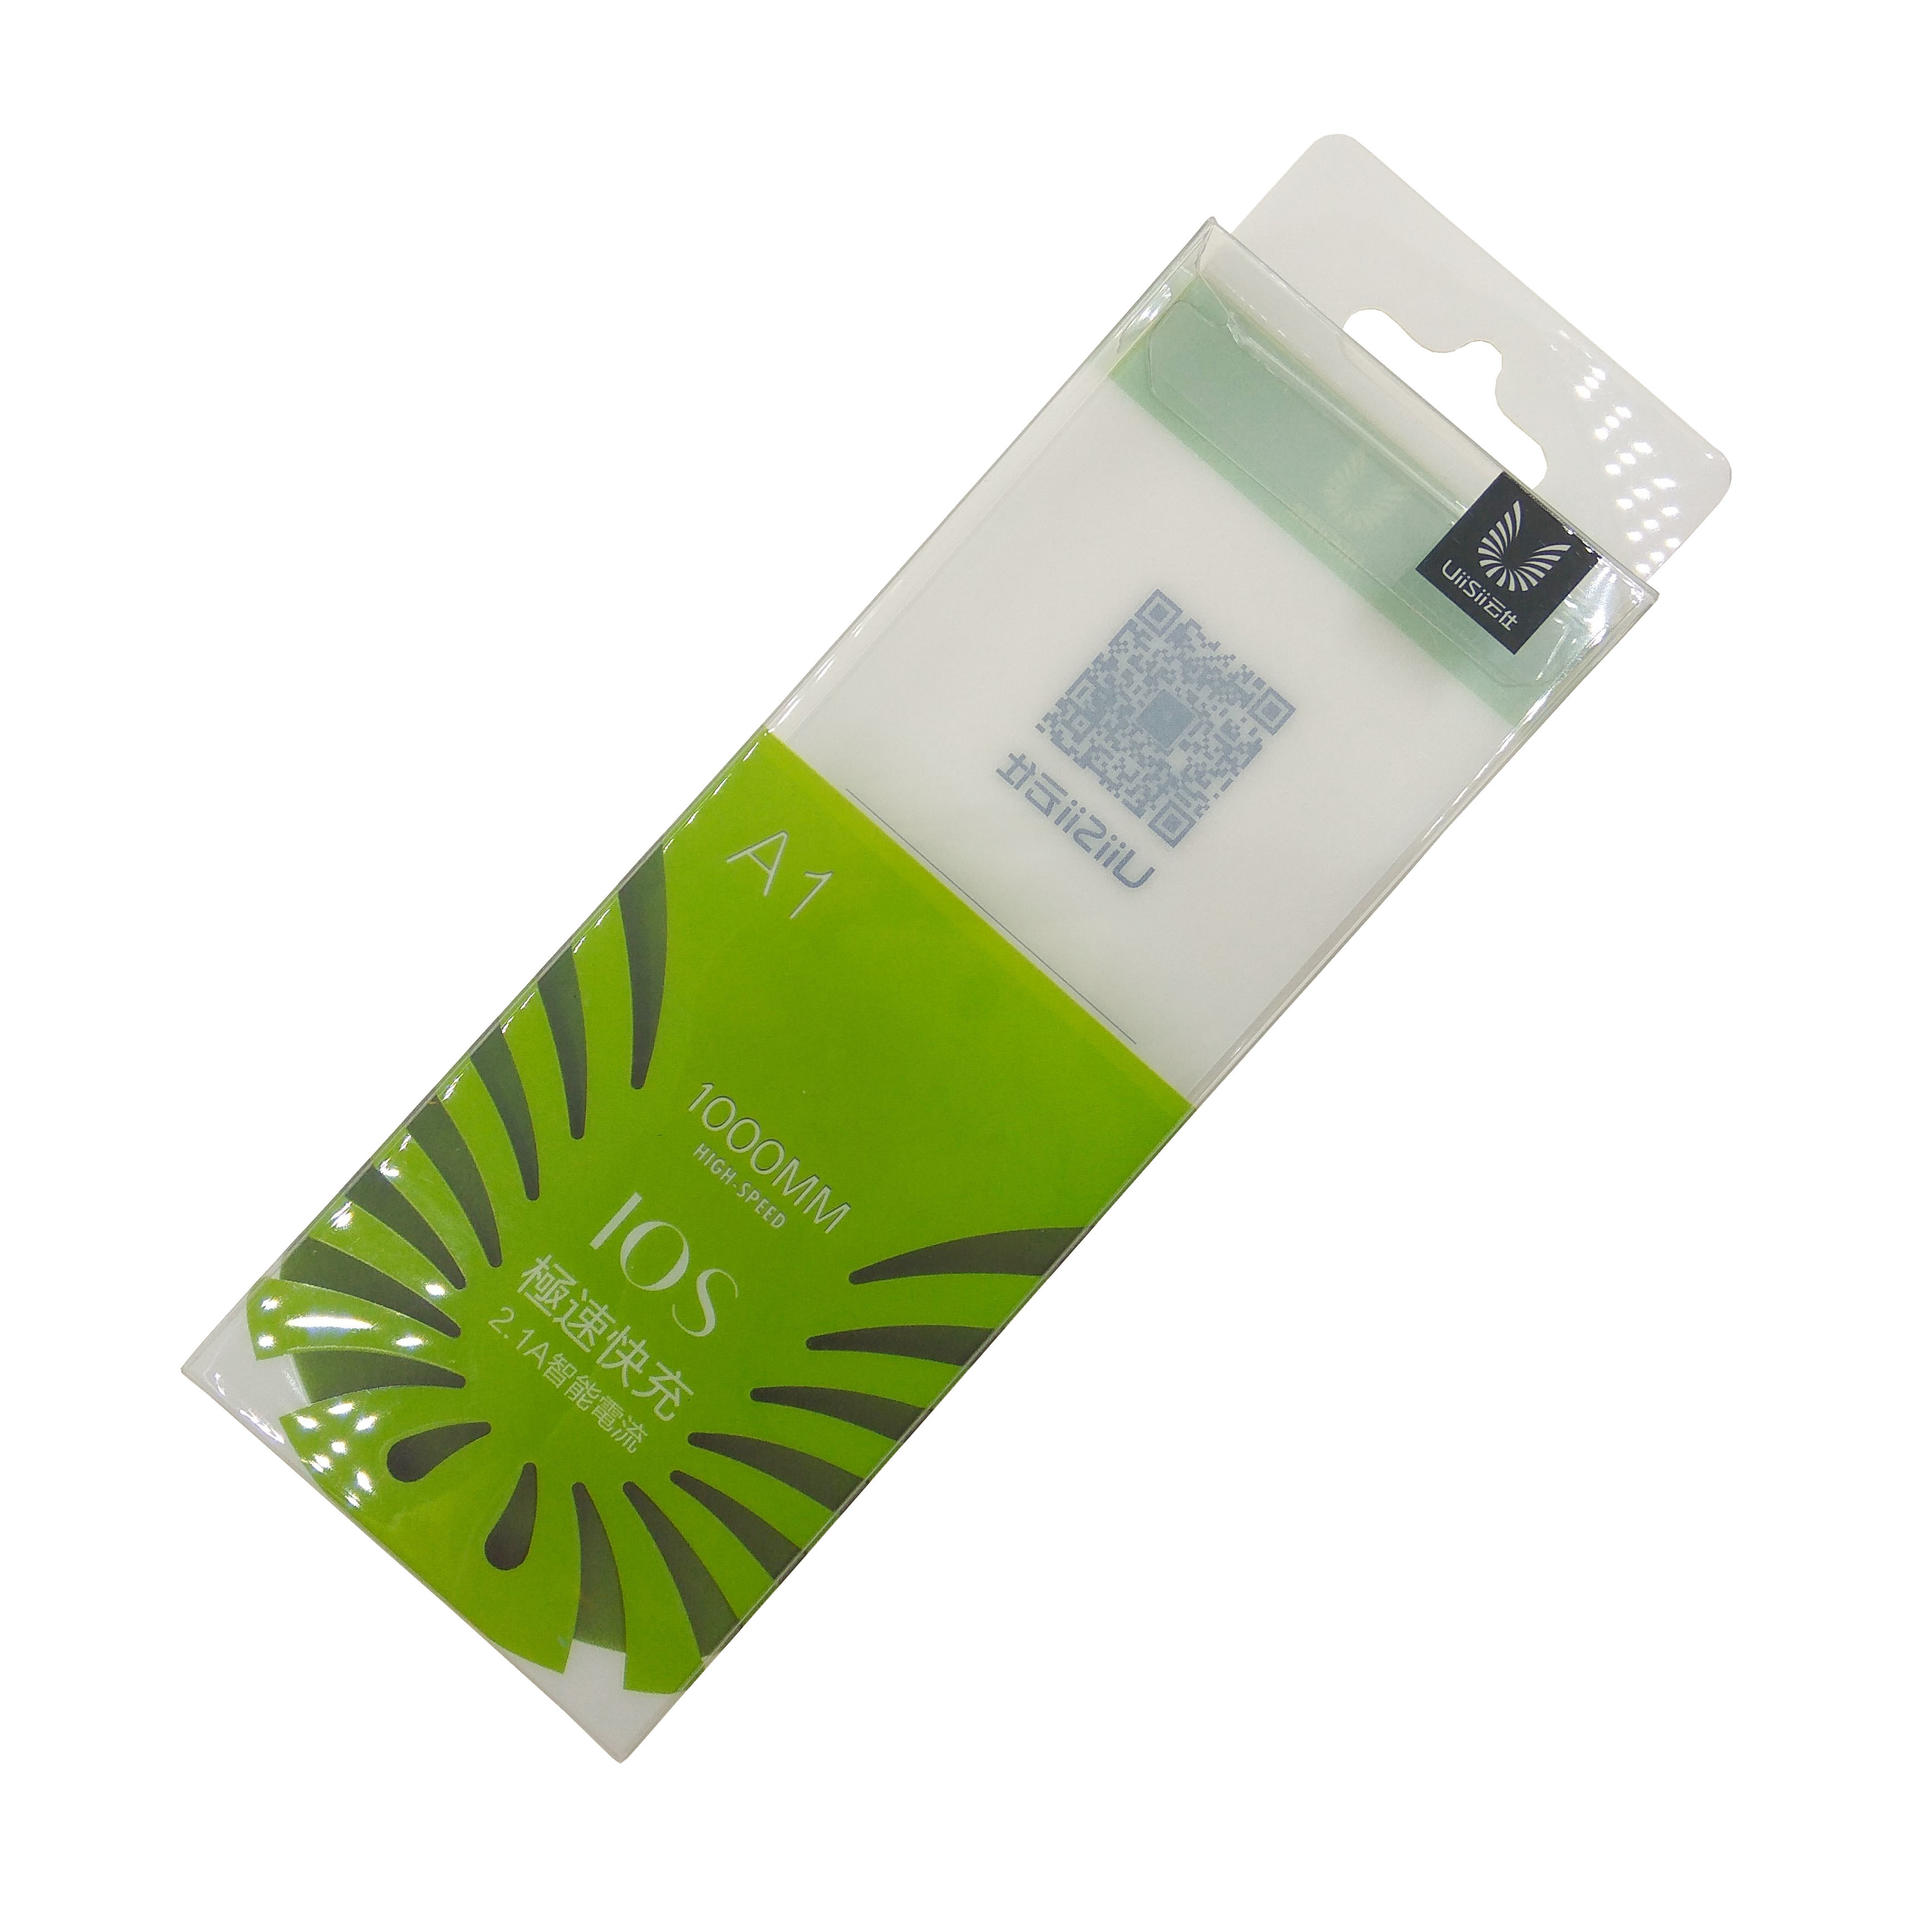 Soft Crease Plastic Retail Packaging with Euro Hole for 1000MM Power Bank